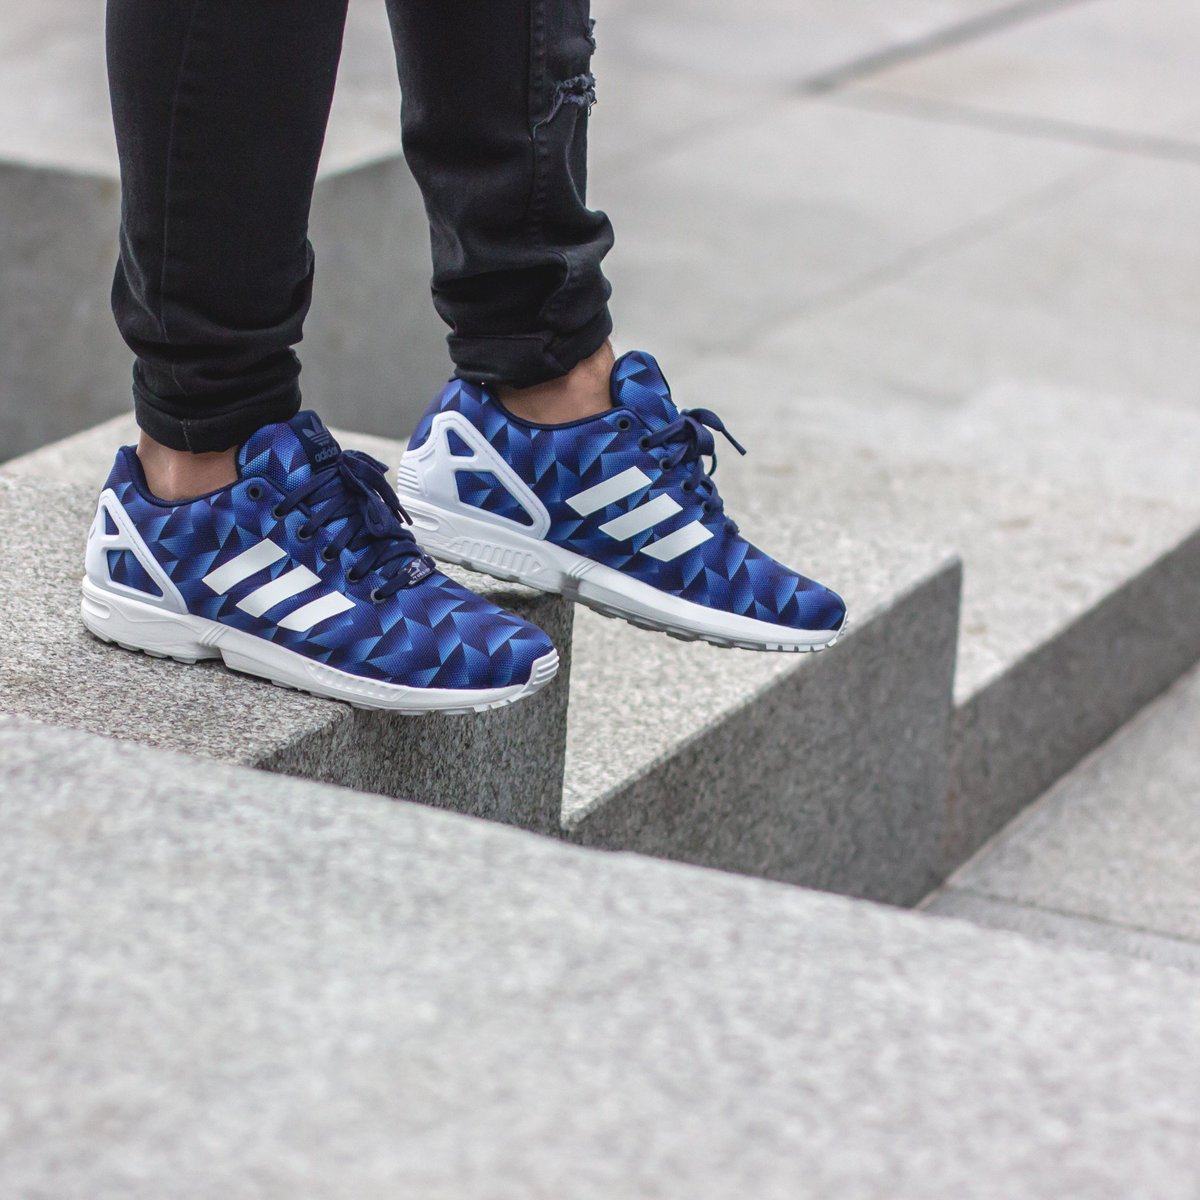 sale retailer db23c 82238 new zealand adidas jd sports d619c ccd41 get the adidas originals zx flux  geometric pack is only available at a4df9 108b8